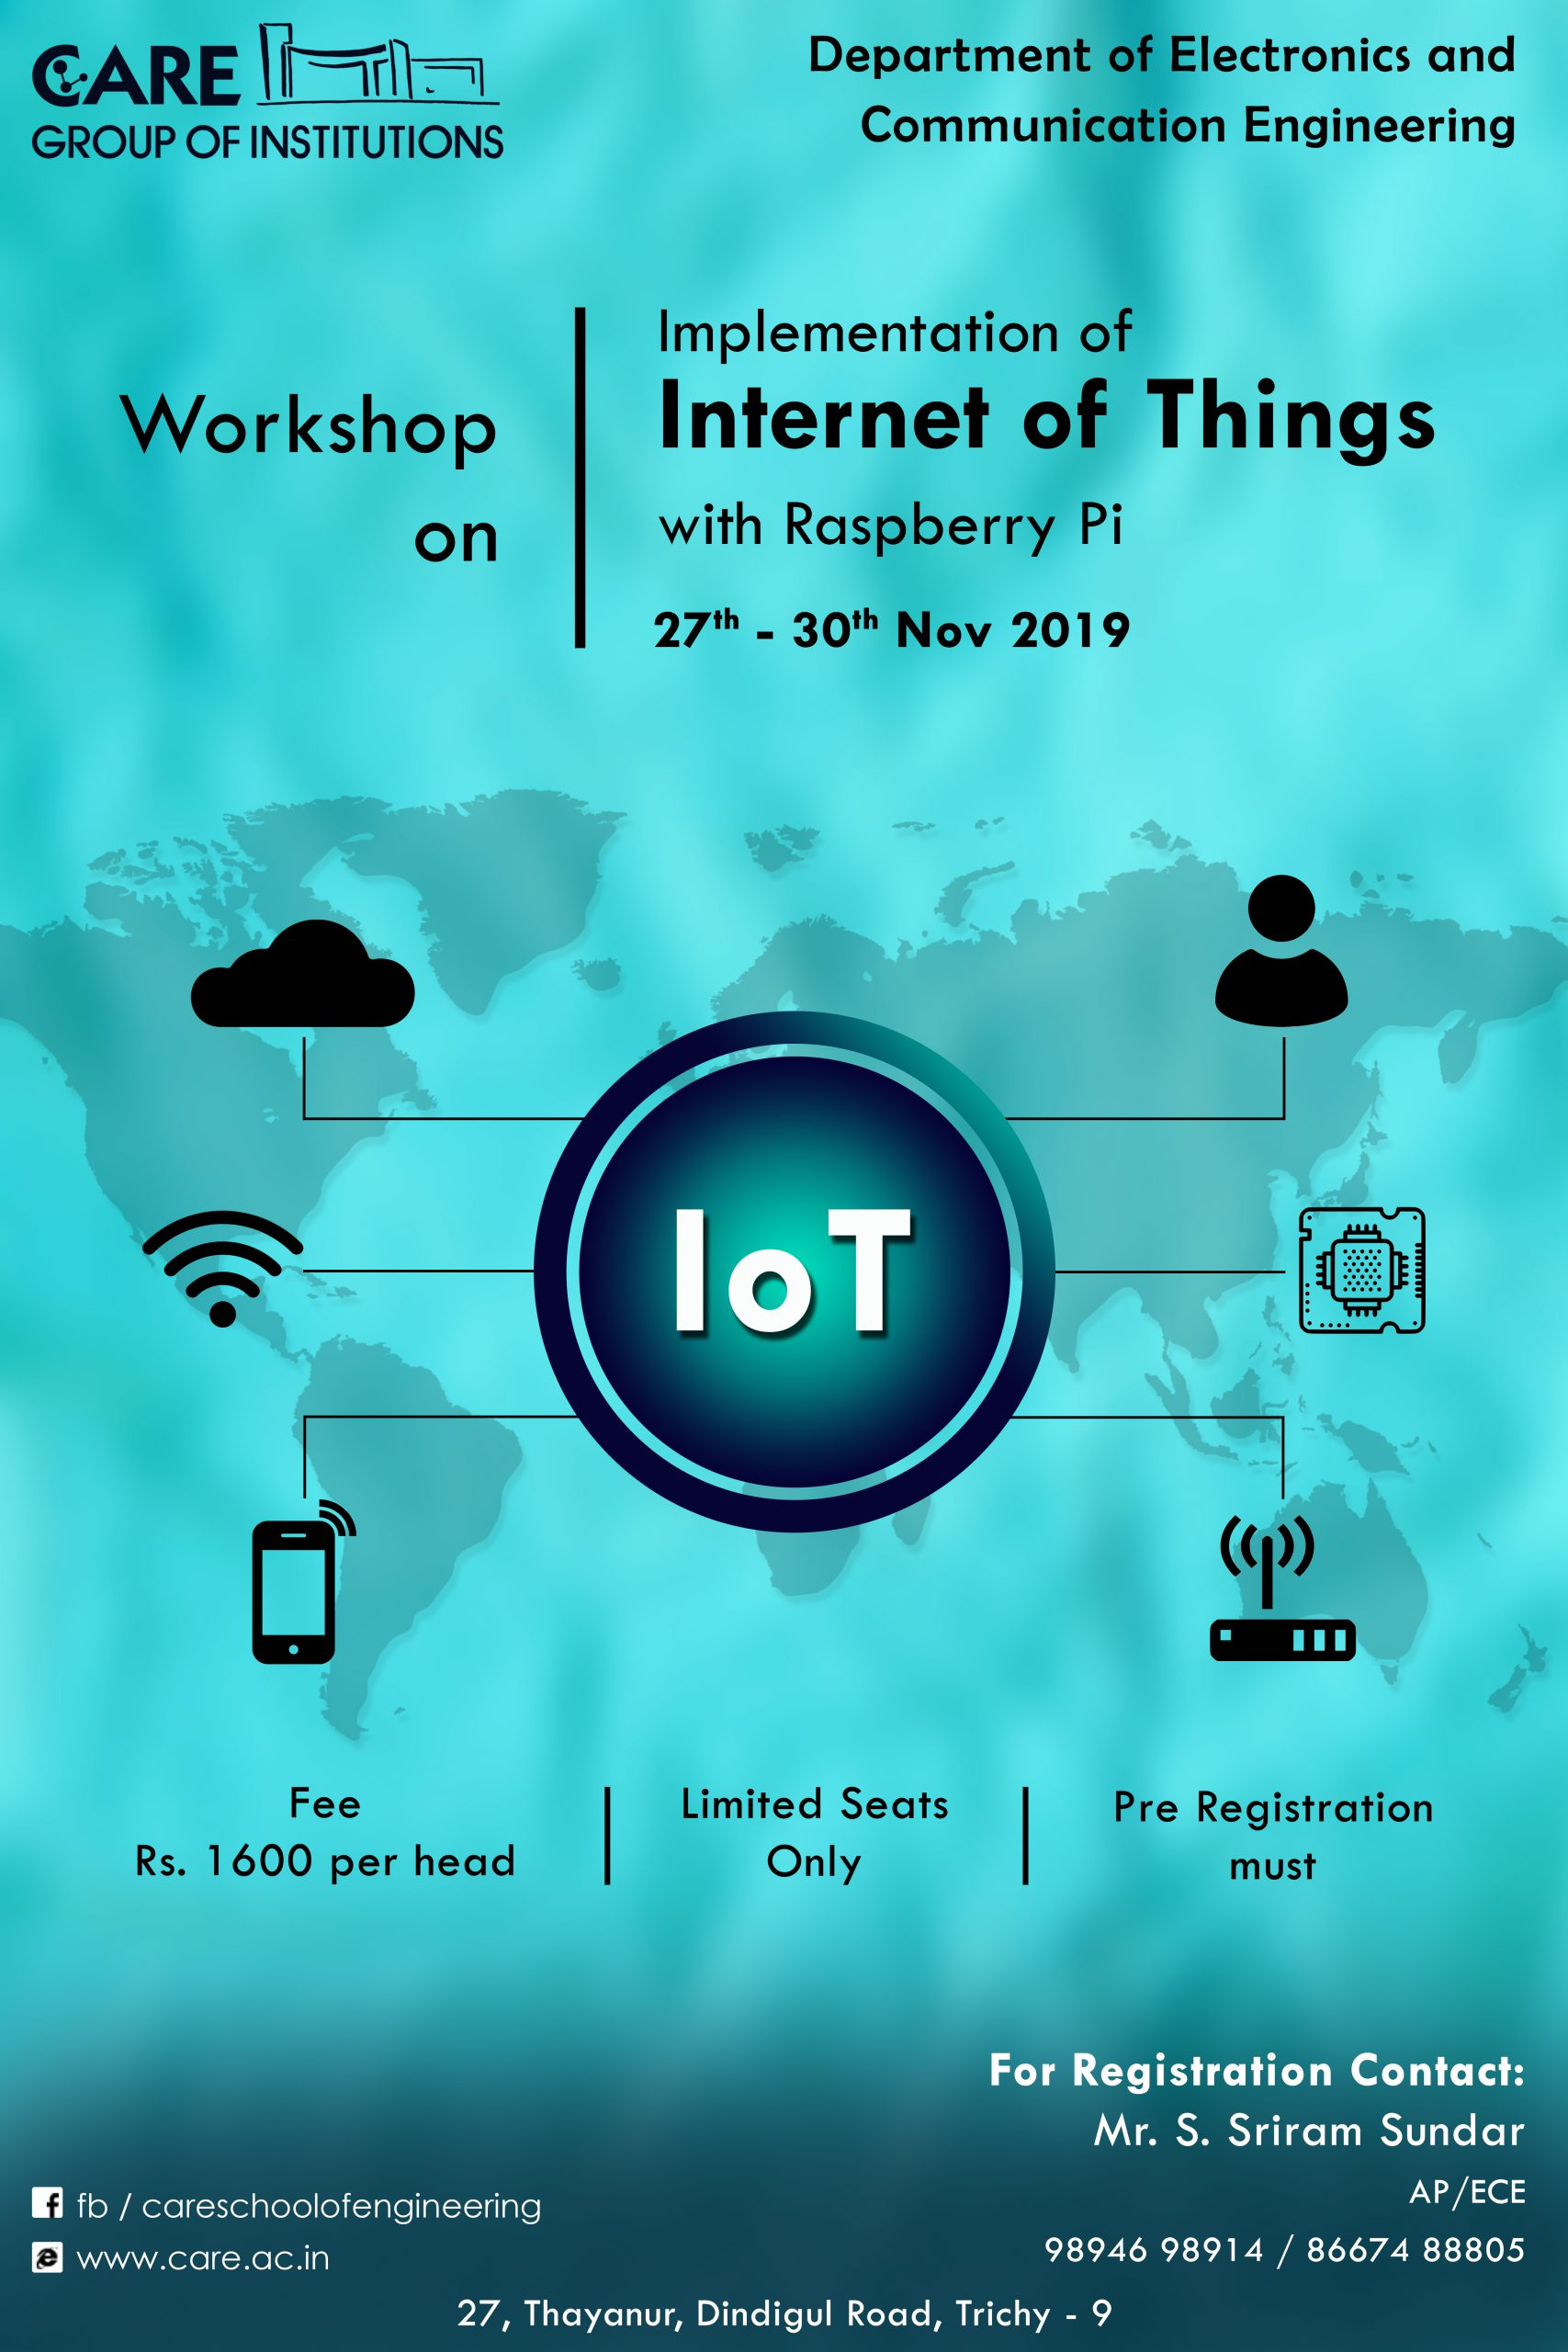 Implementation of IoT with Raspberry Pi